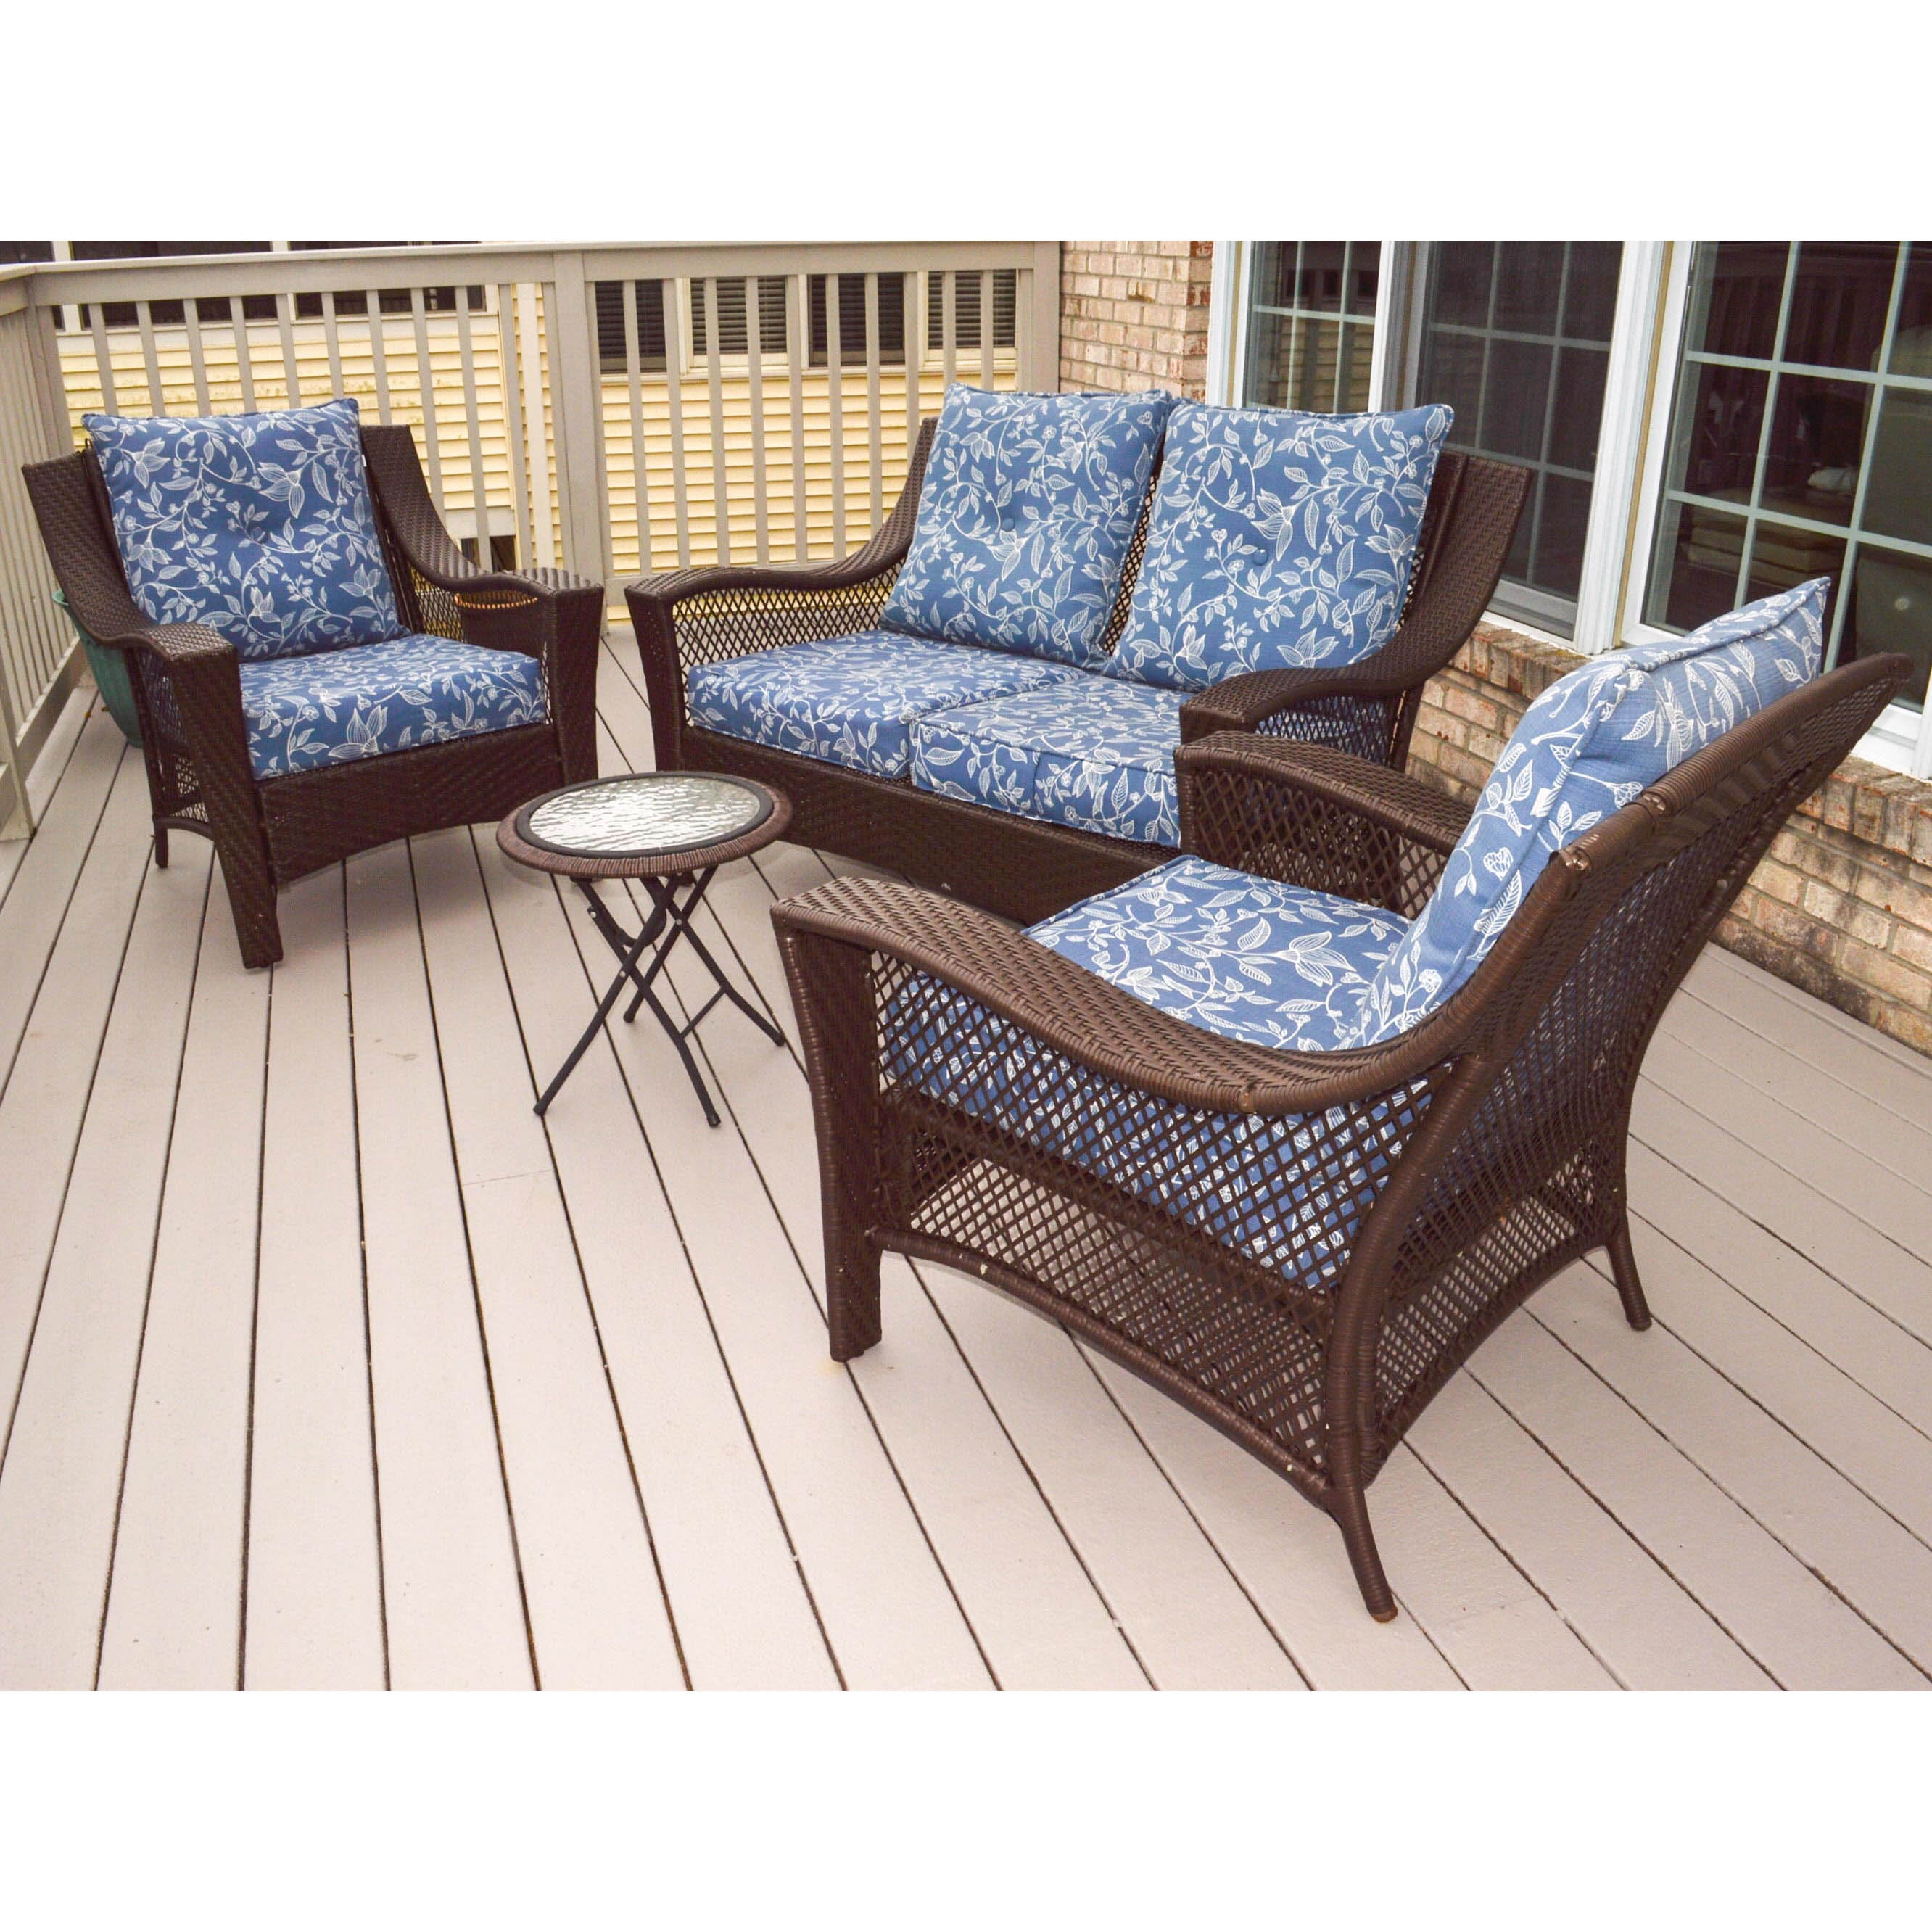 FourPiece Better Homes and Gardens Patio Furniture Set EBTH